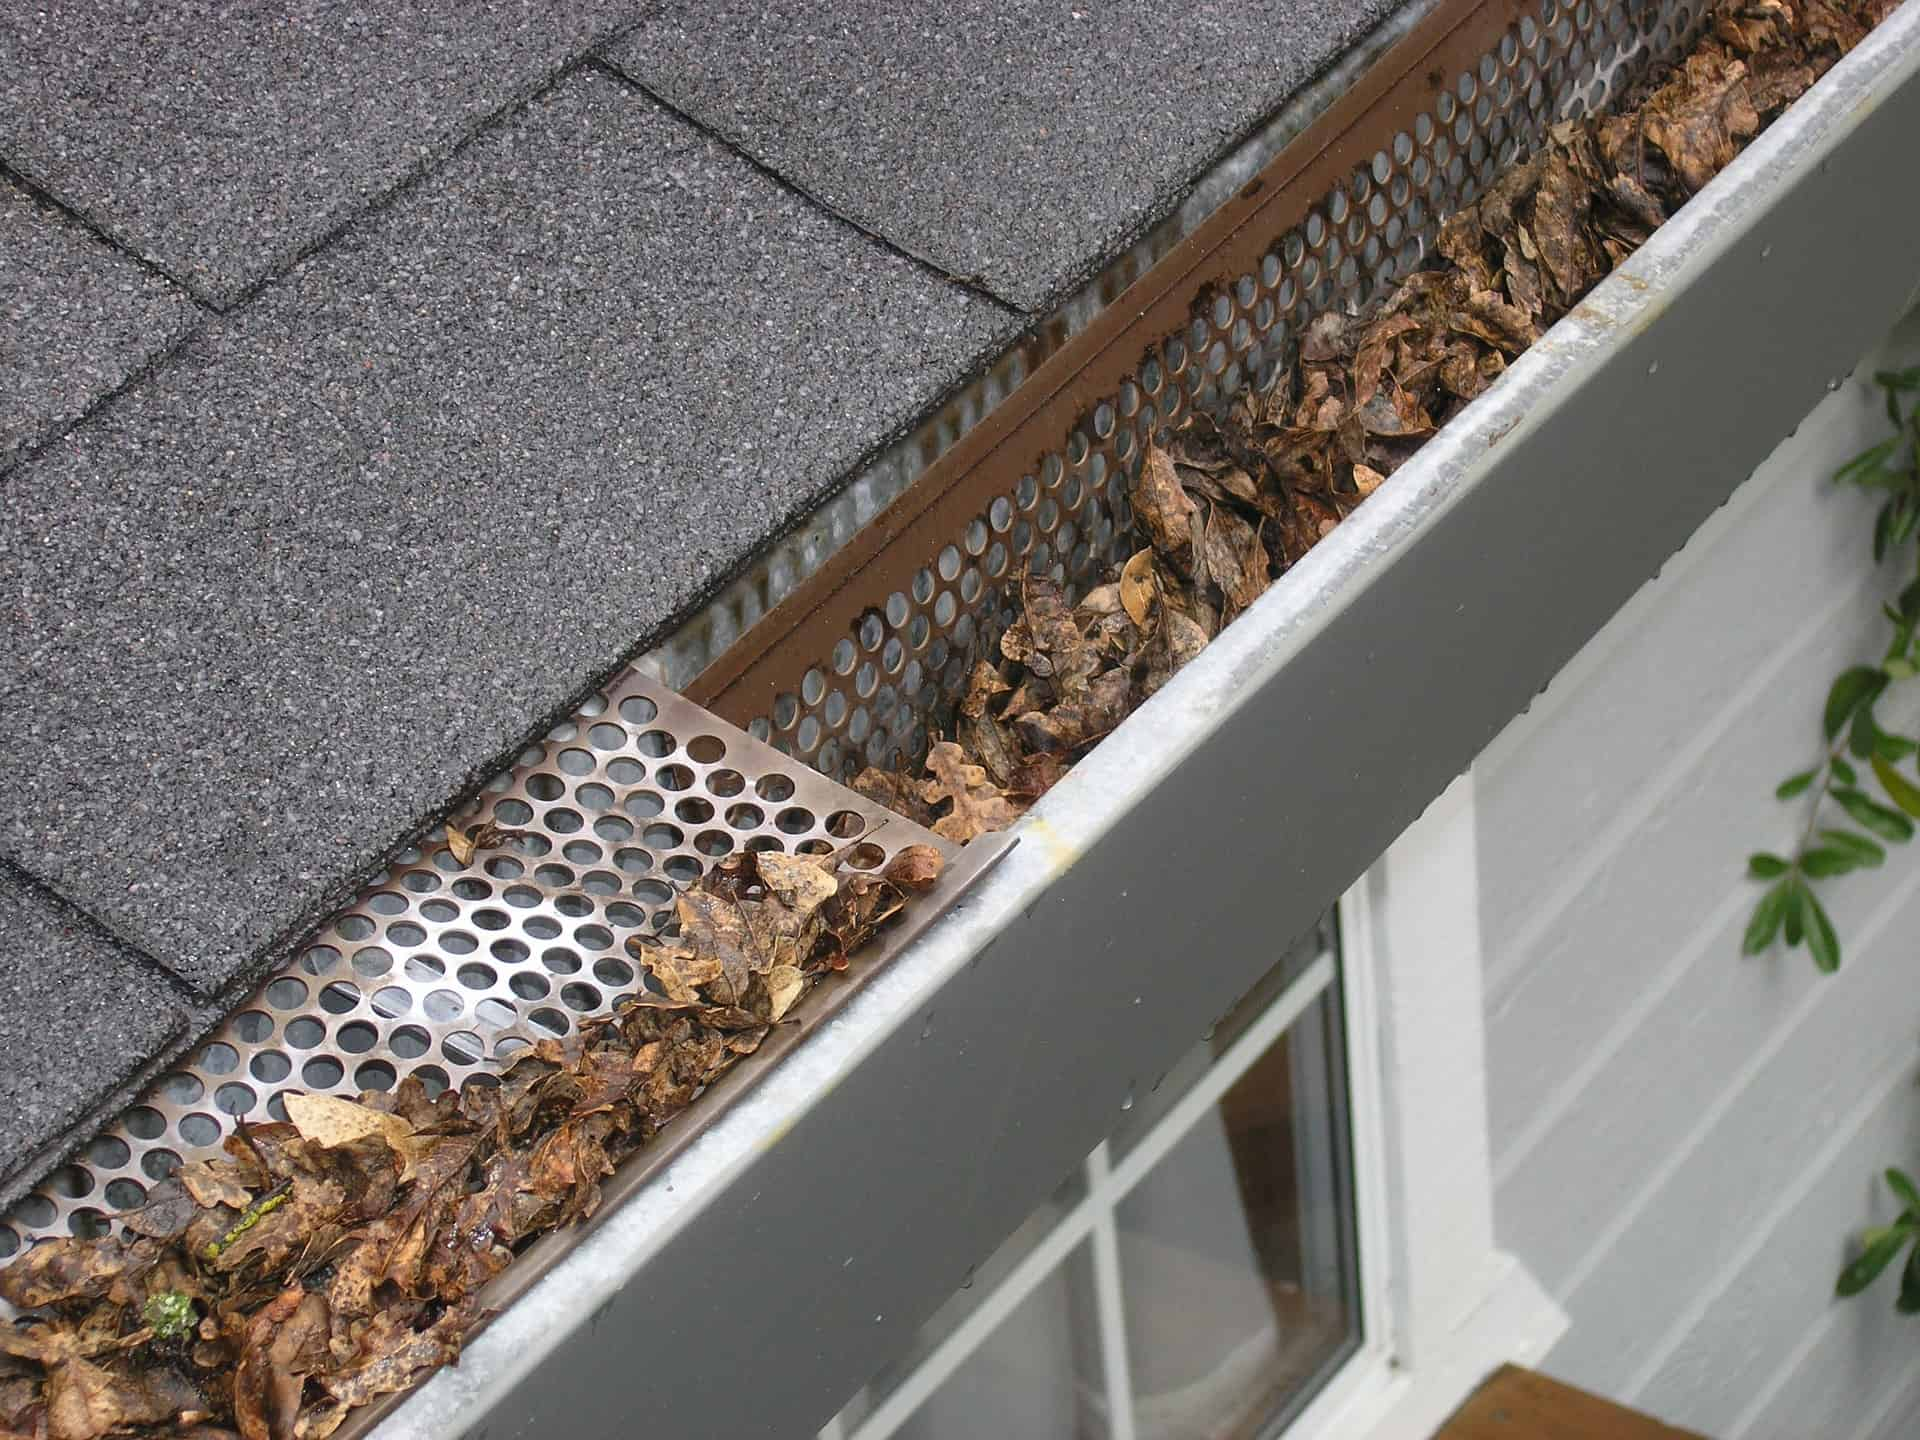 Gutter Cleaning – Preventative Maintnance